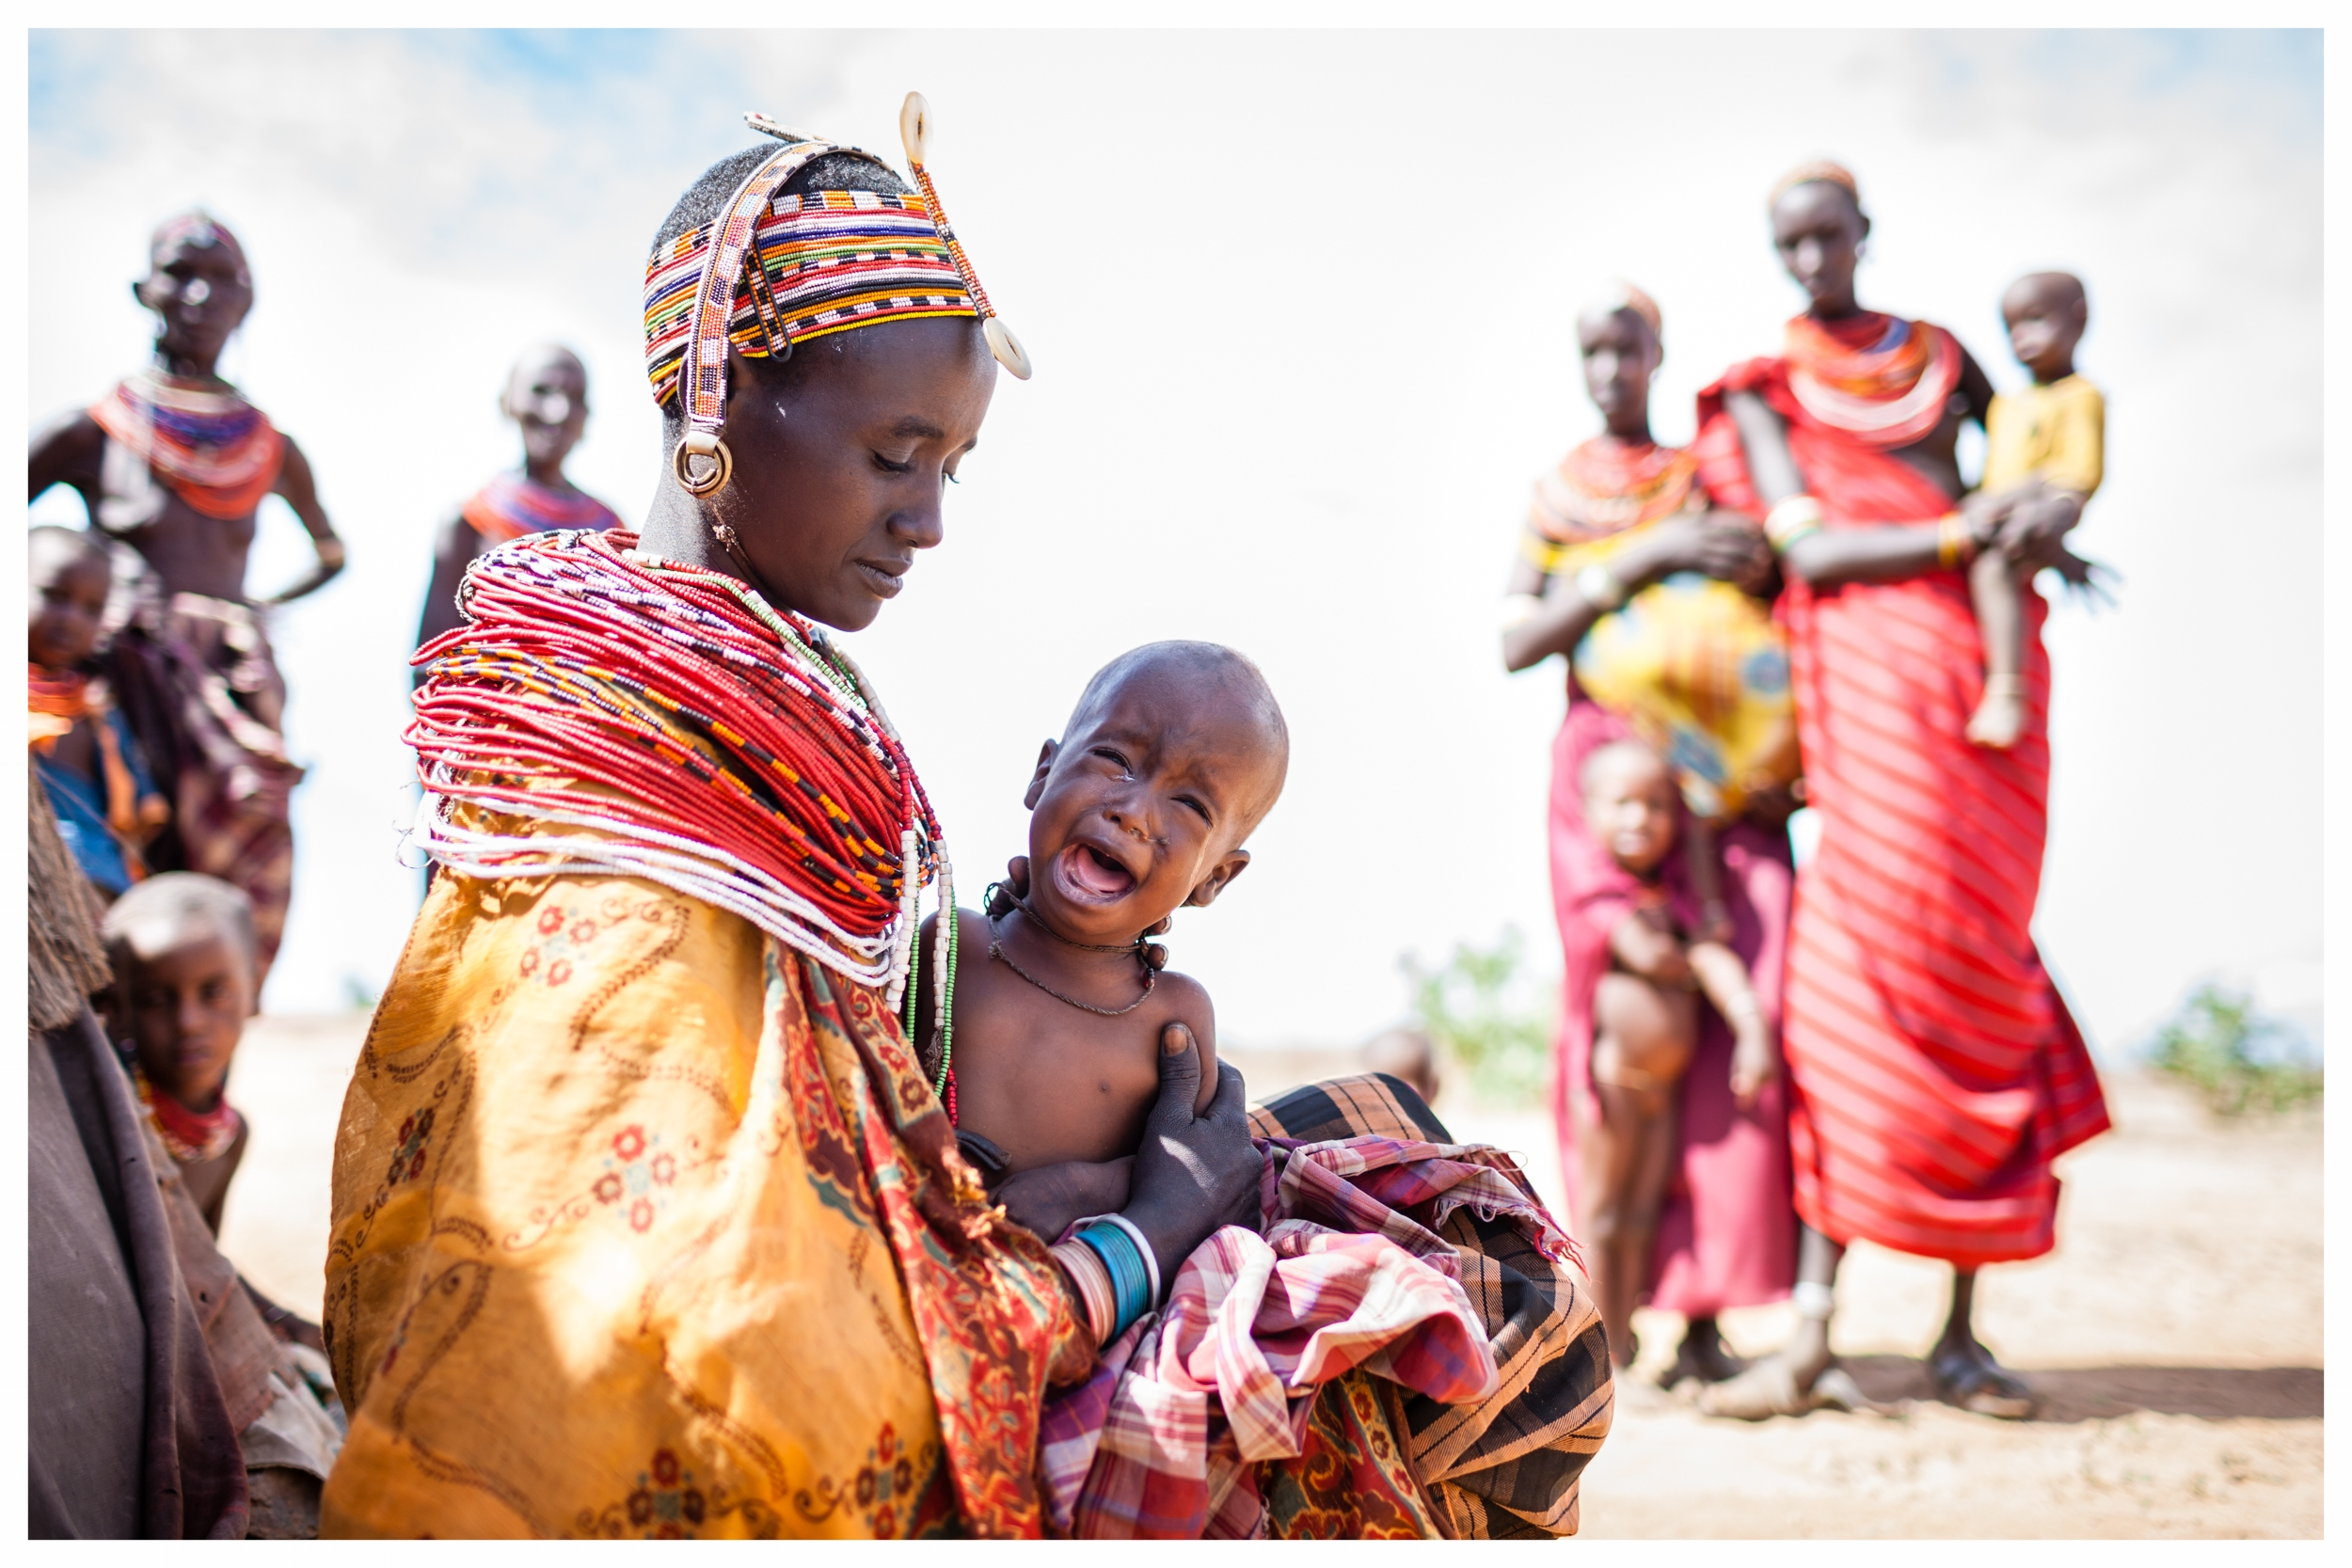 Rendille tribeswoman, Nkoror Galangan with her child Diboya. Marsabit, Northern Kenya. Photo © Marcus Perkins